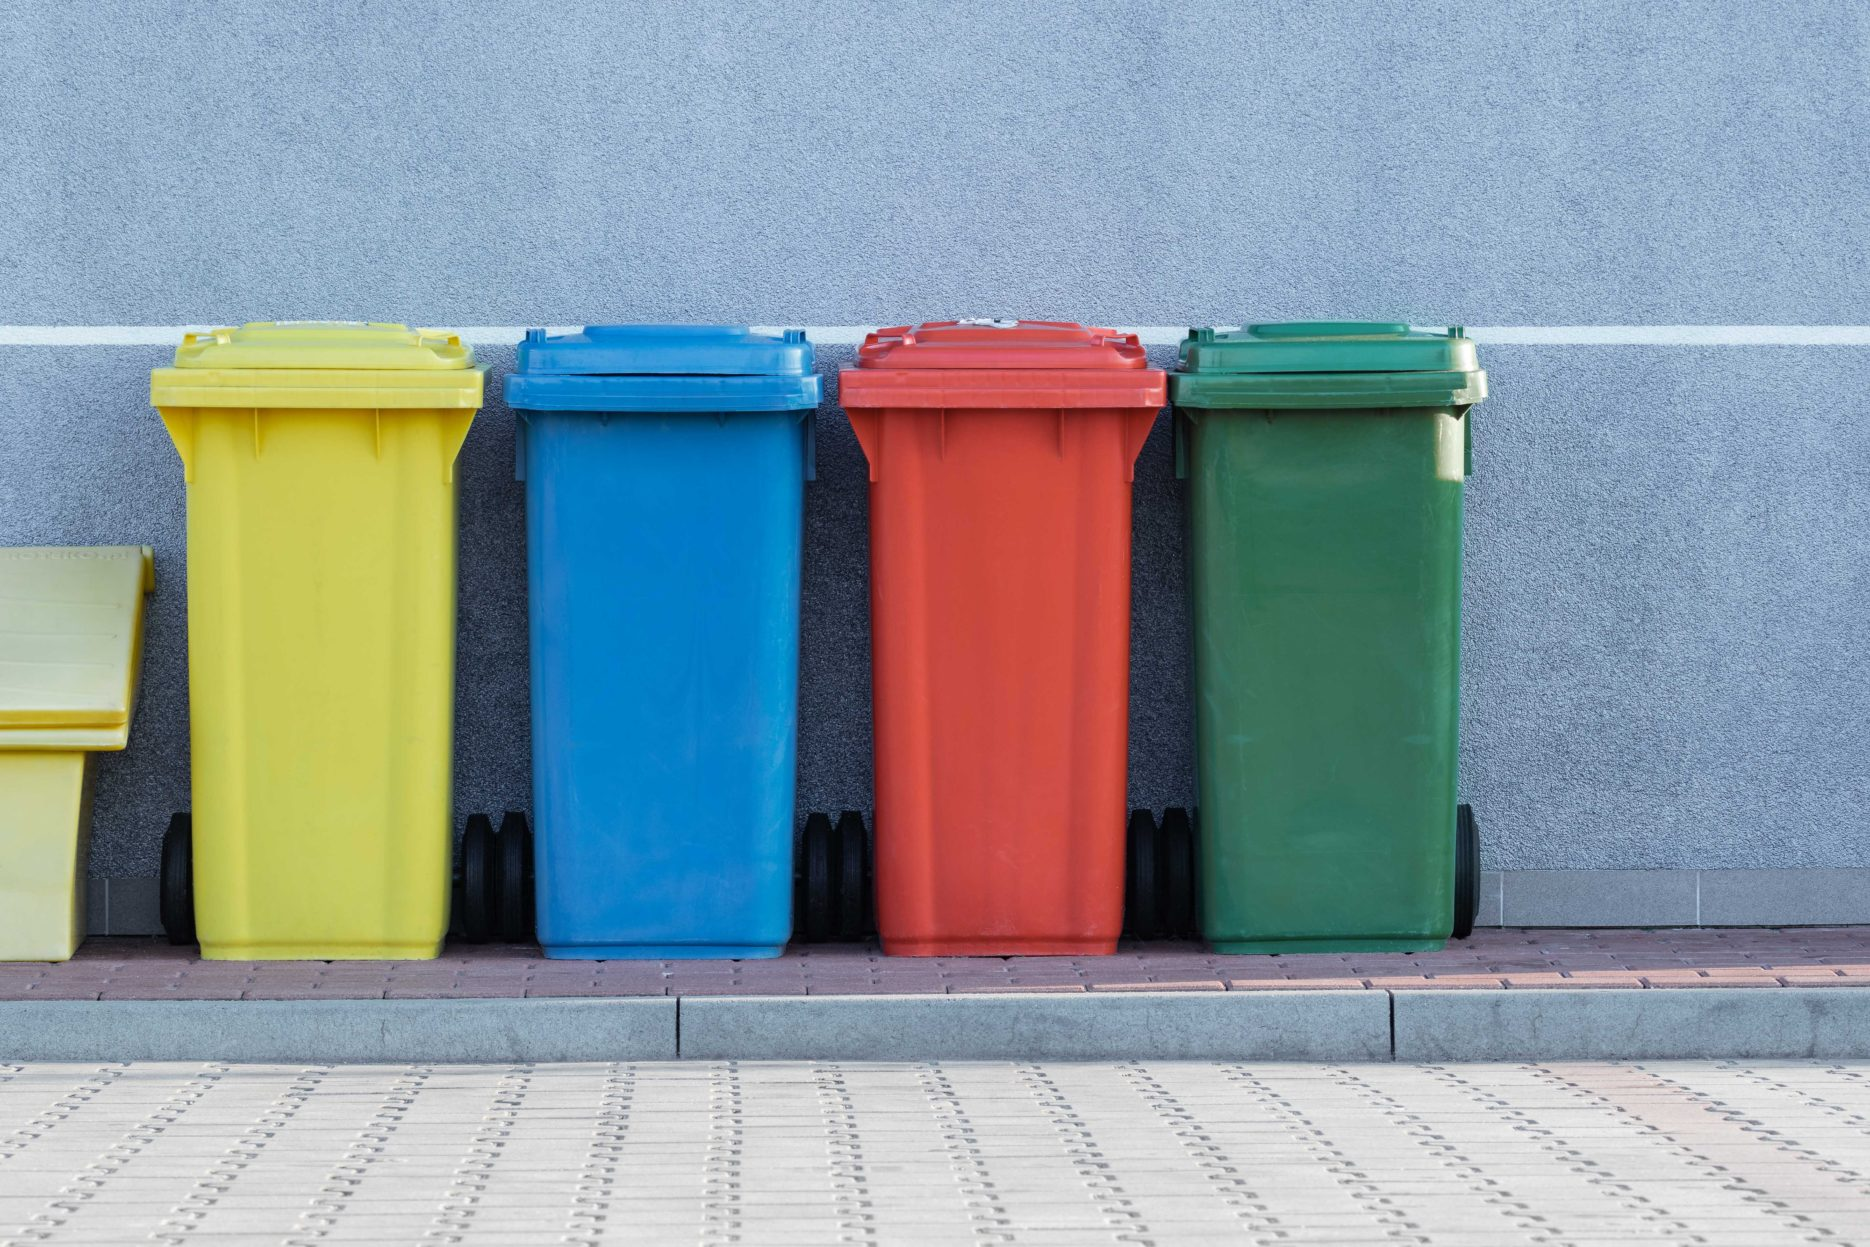 Multi-coloured recycling bins